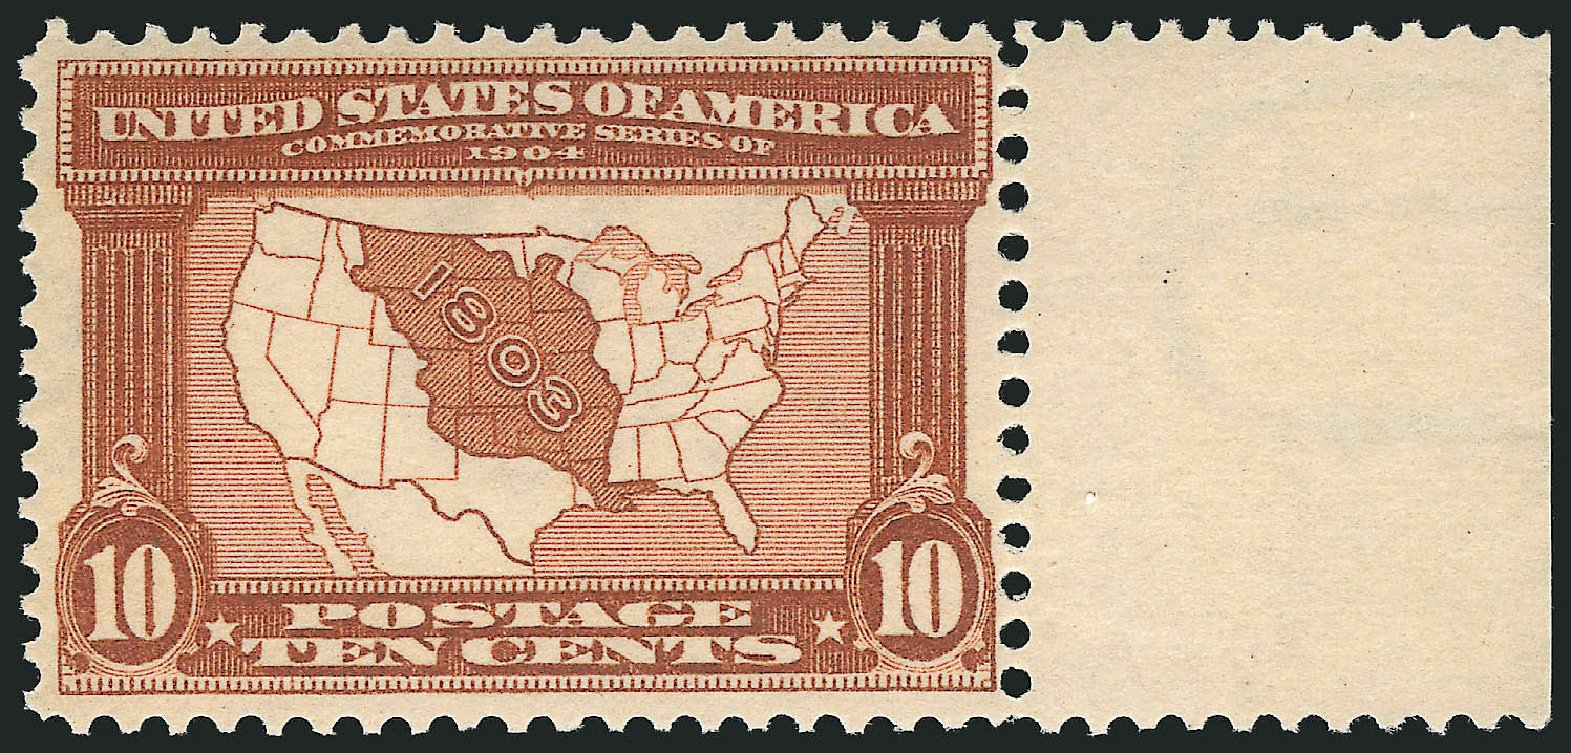 Price of US Stamps Scott Catalog 327 - 1904 10c Louisiana Purchase Exposition. Robert Siegel Auction Galleries, Jun 2015, Sale 1100, Lot 79